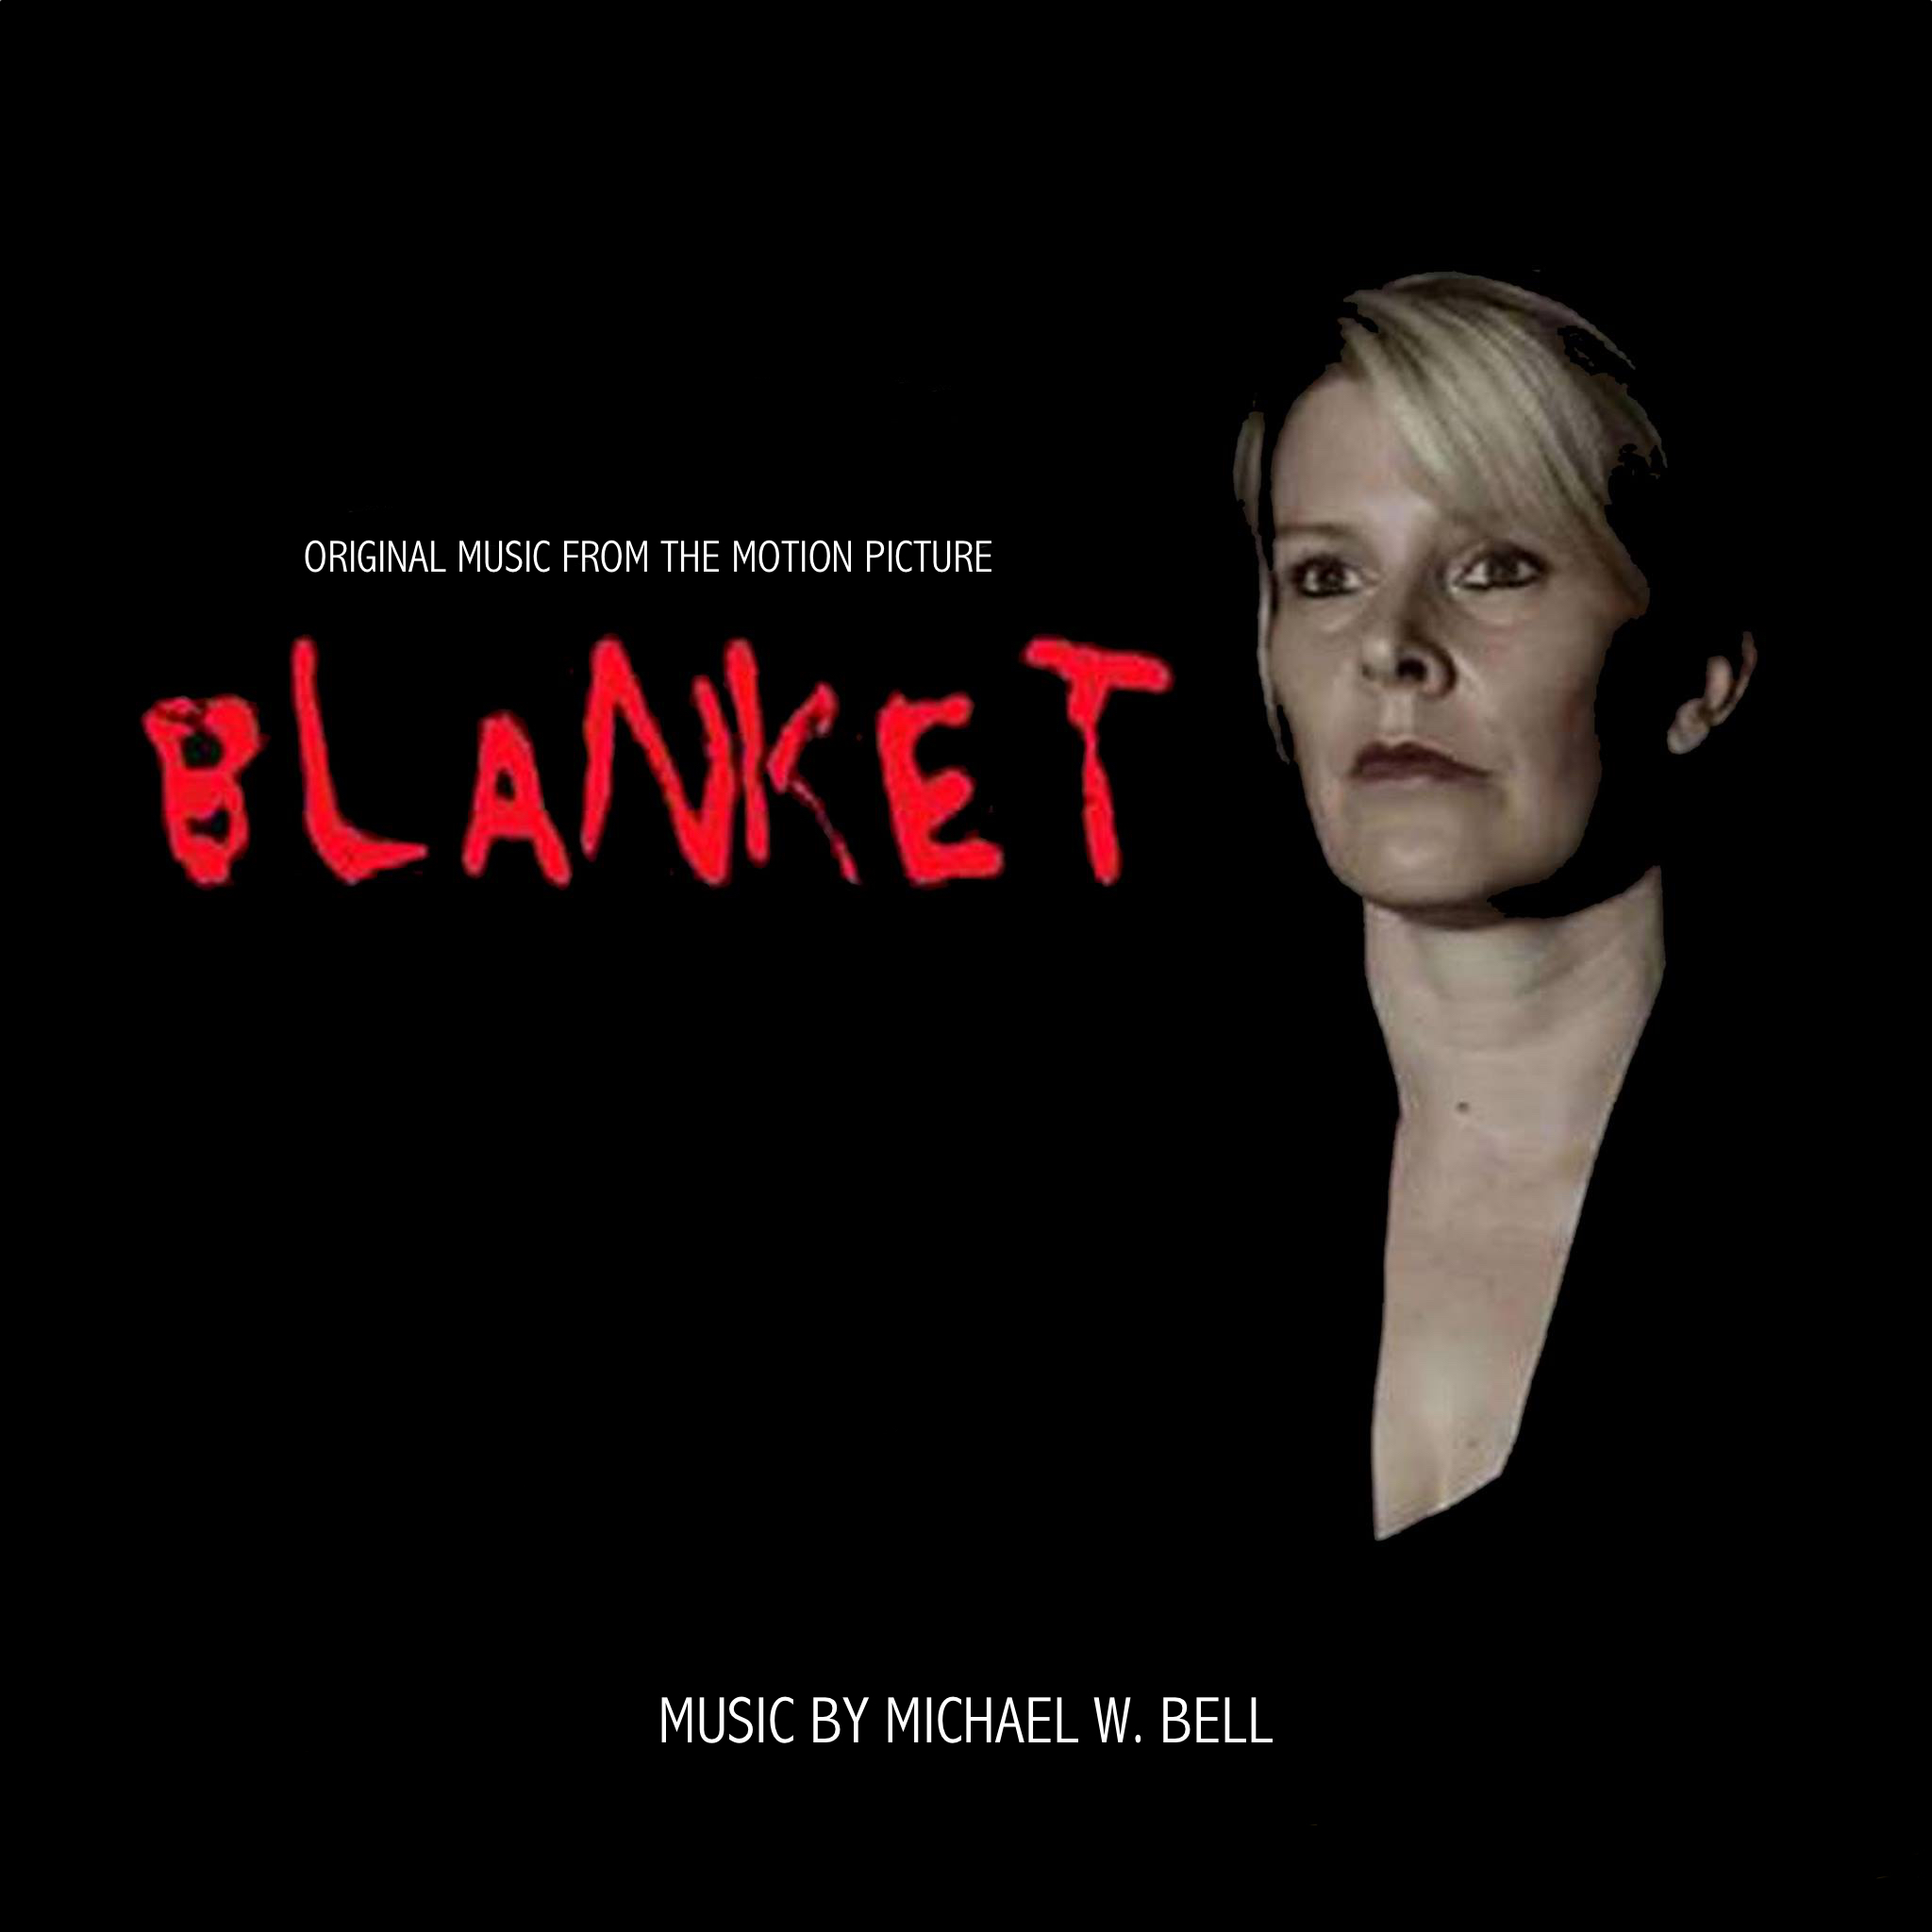 MICHAEL W. BELLBlanket (Original Motion Picture Score) - AEP0006 - LP